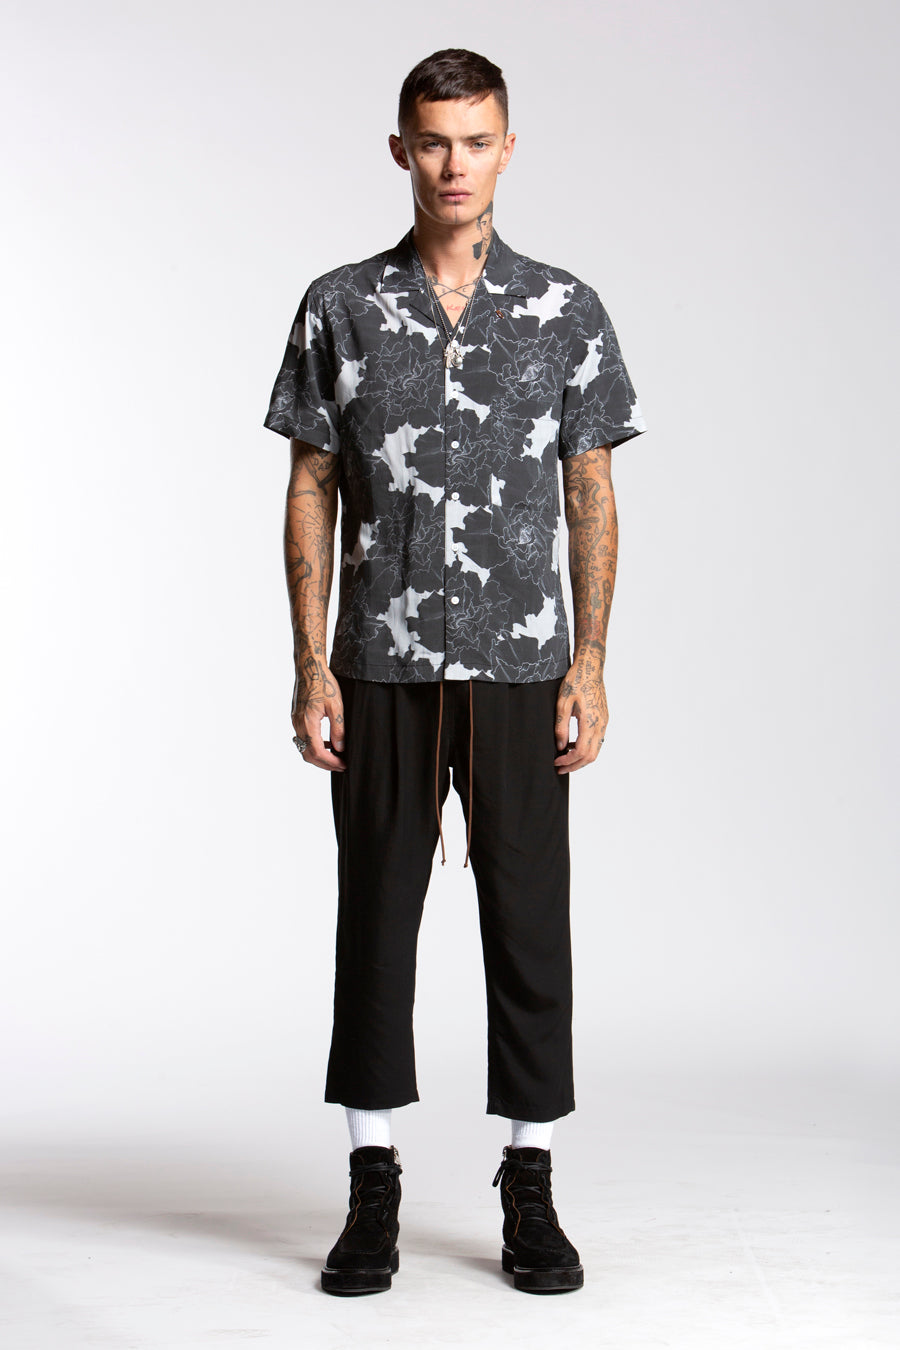 candorofficial - Blossom Aloha Shirt, Black Grey - Shirts